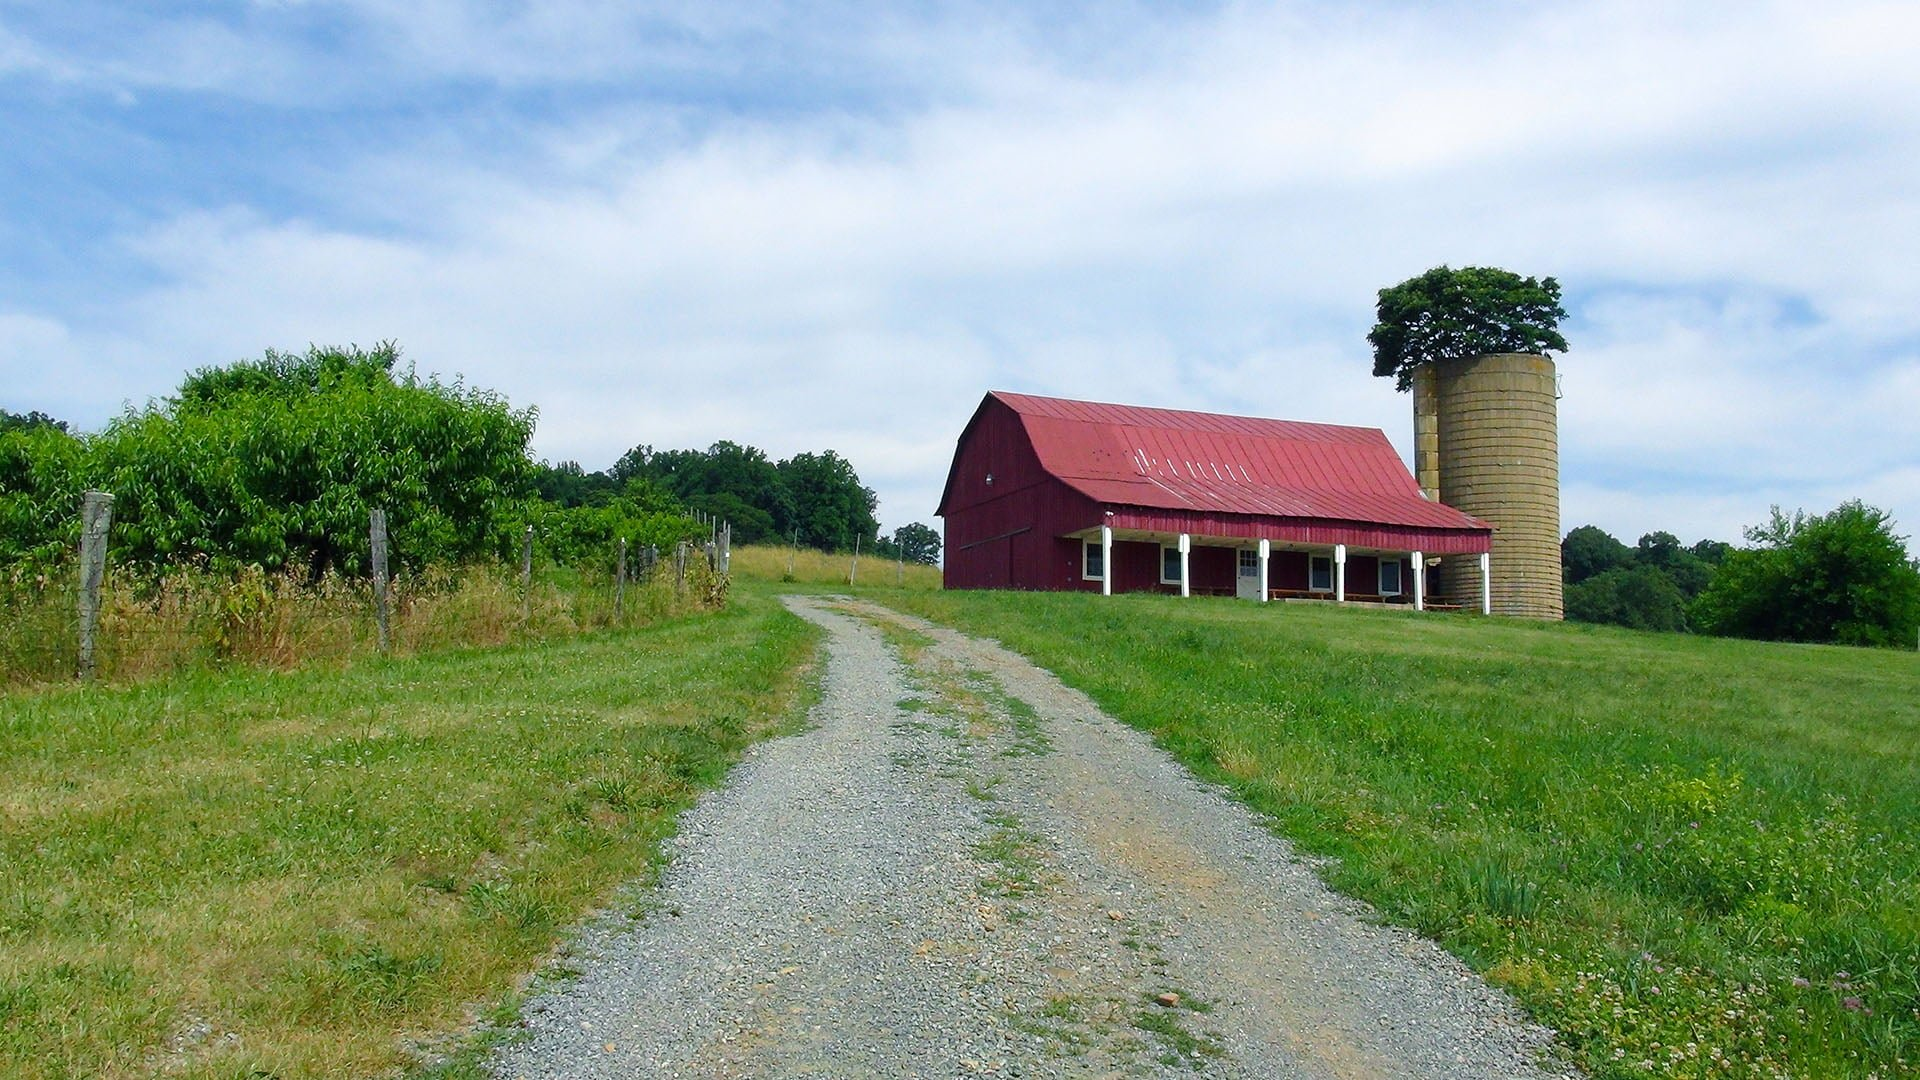 Valley View Farm Red Barn